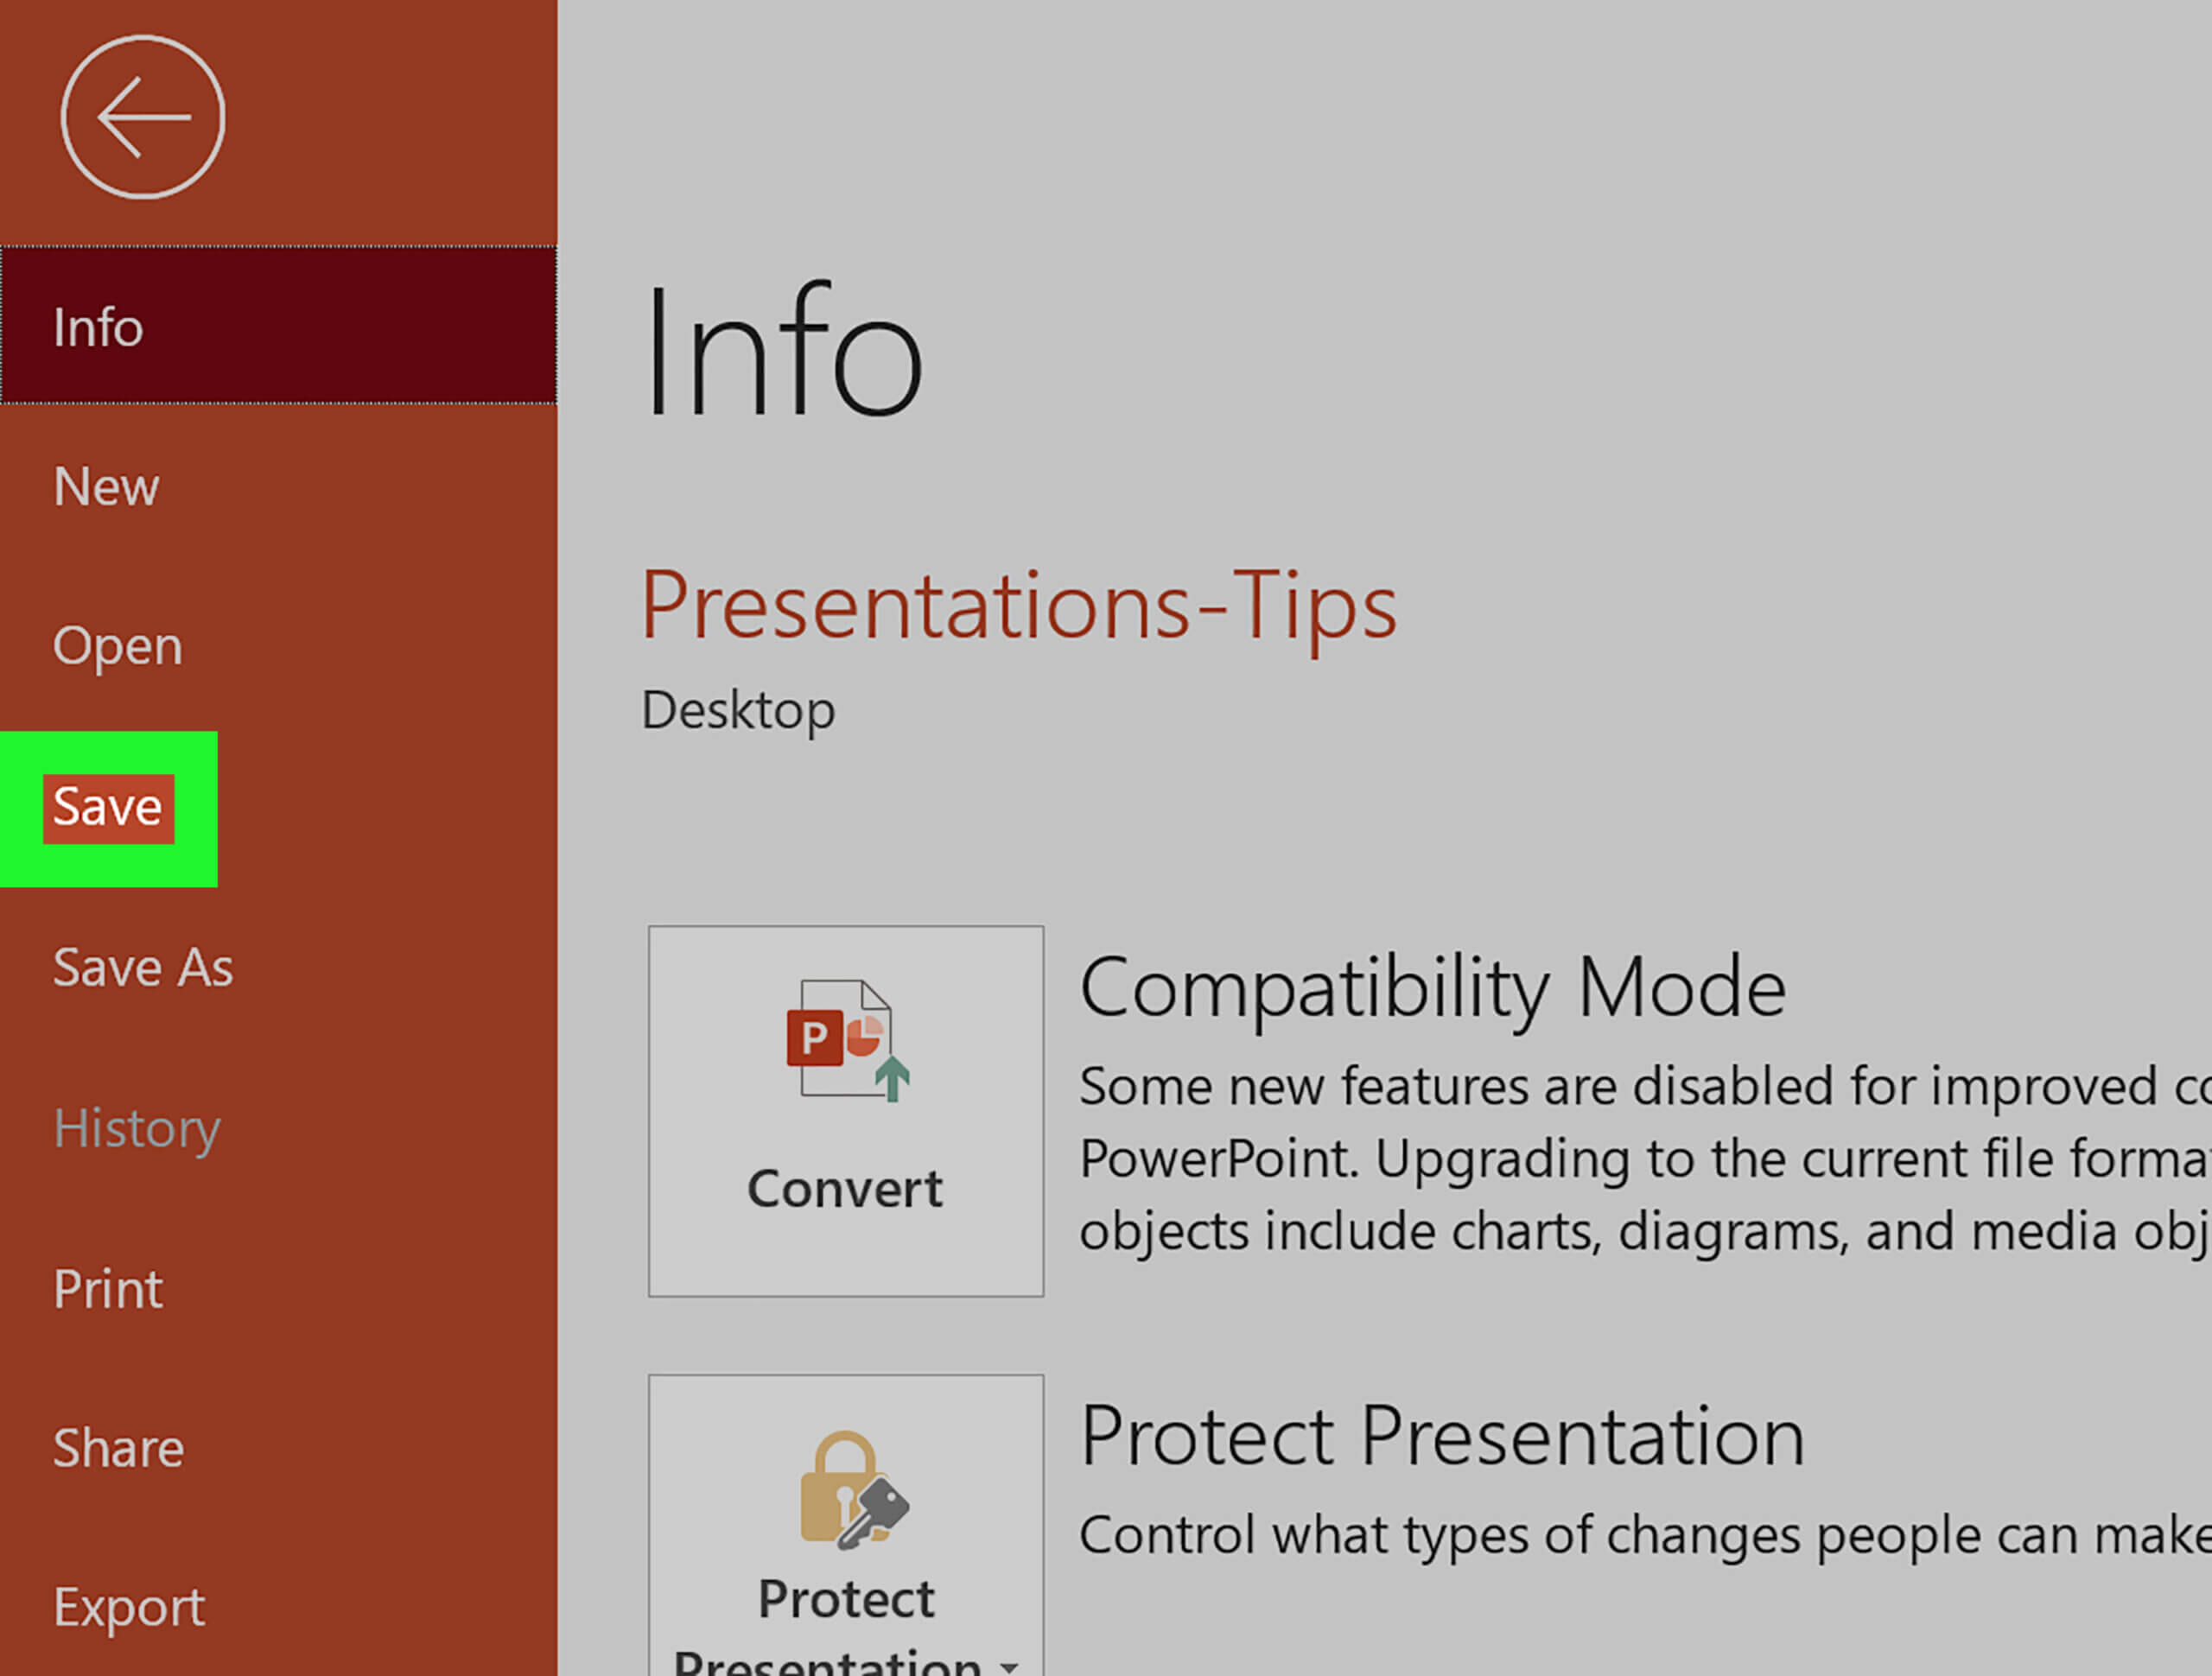 How To Edit A Powerpoint Template: 6 Steps (With Pictures) Throughout How To Edit Powerpoint Template